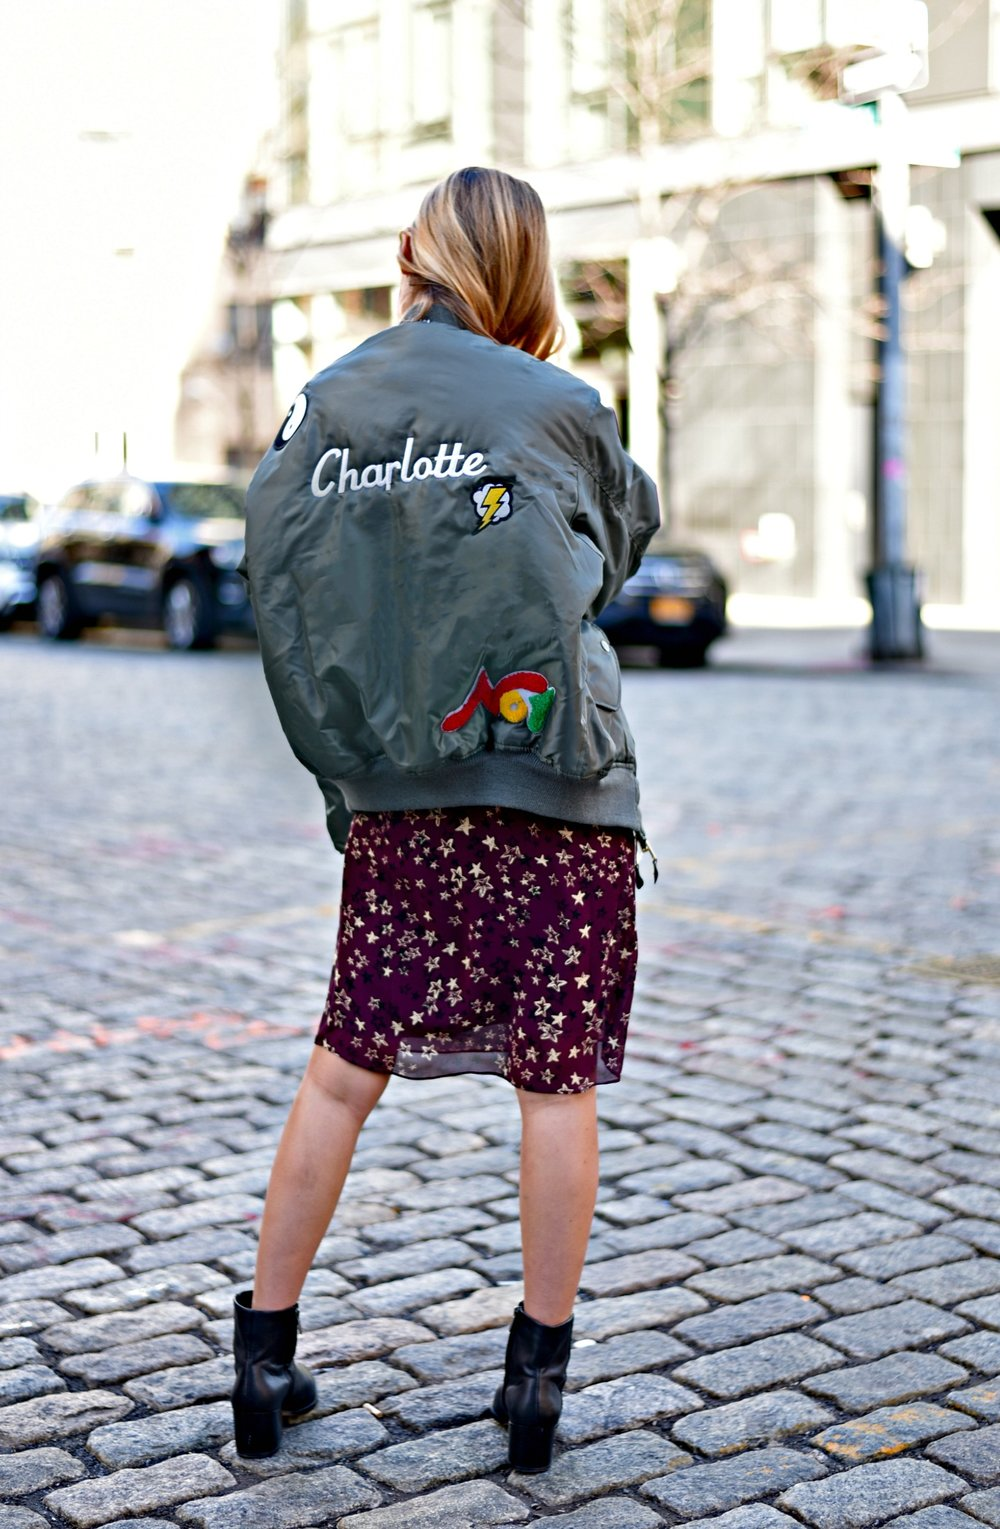 CHARLOTTE BICKLEY YIN 2MY YANG SISTER FASHION BLOGGERS NYC UNEMPLOYED DENIM PERSONALIZED BOMBER JACKET POST 3.jpg